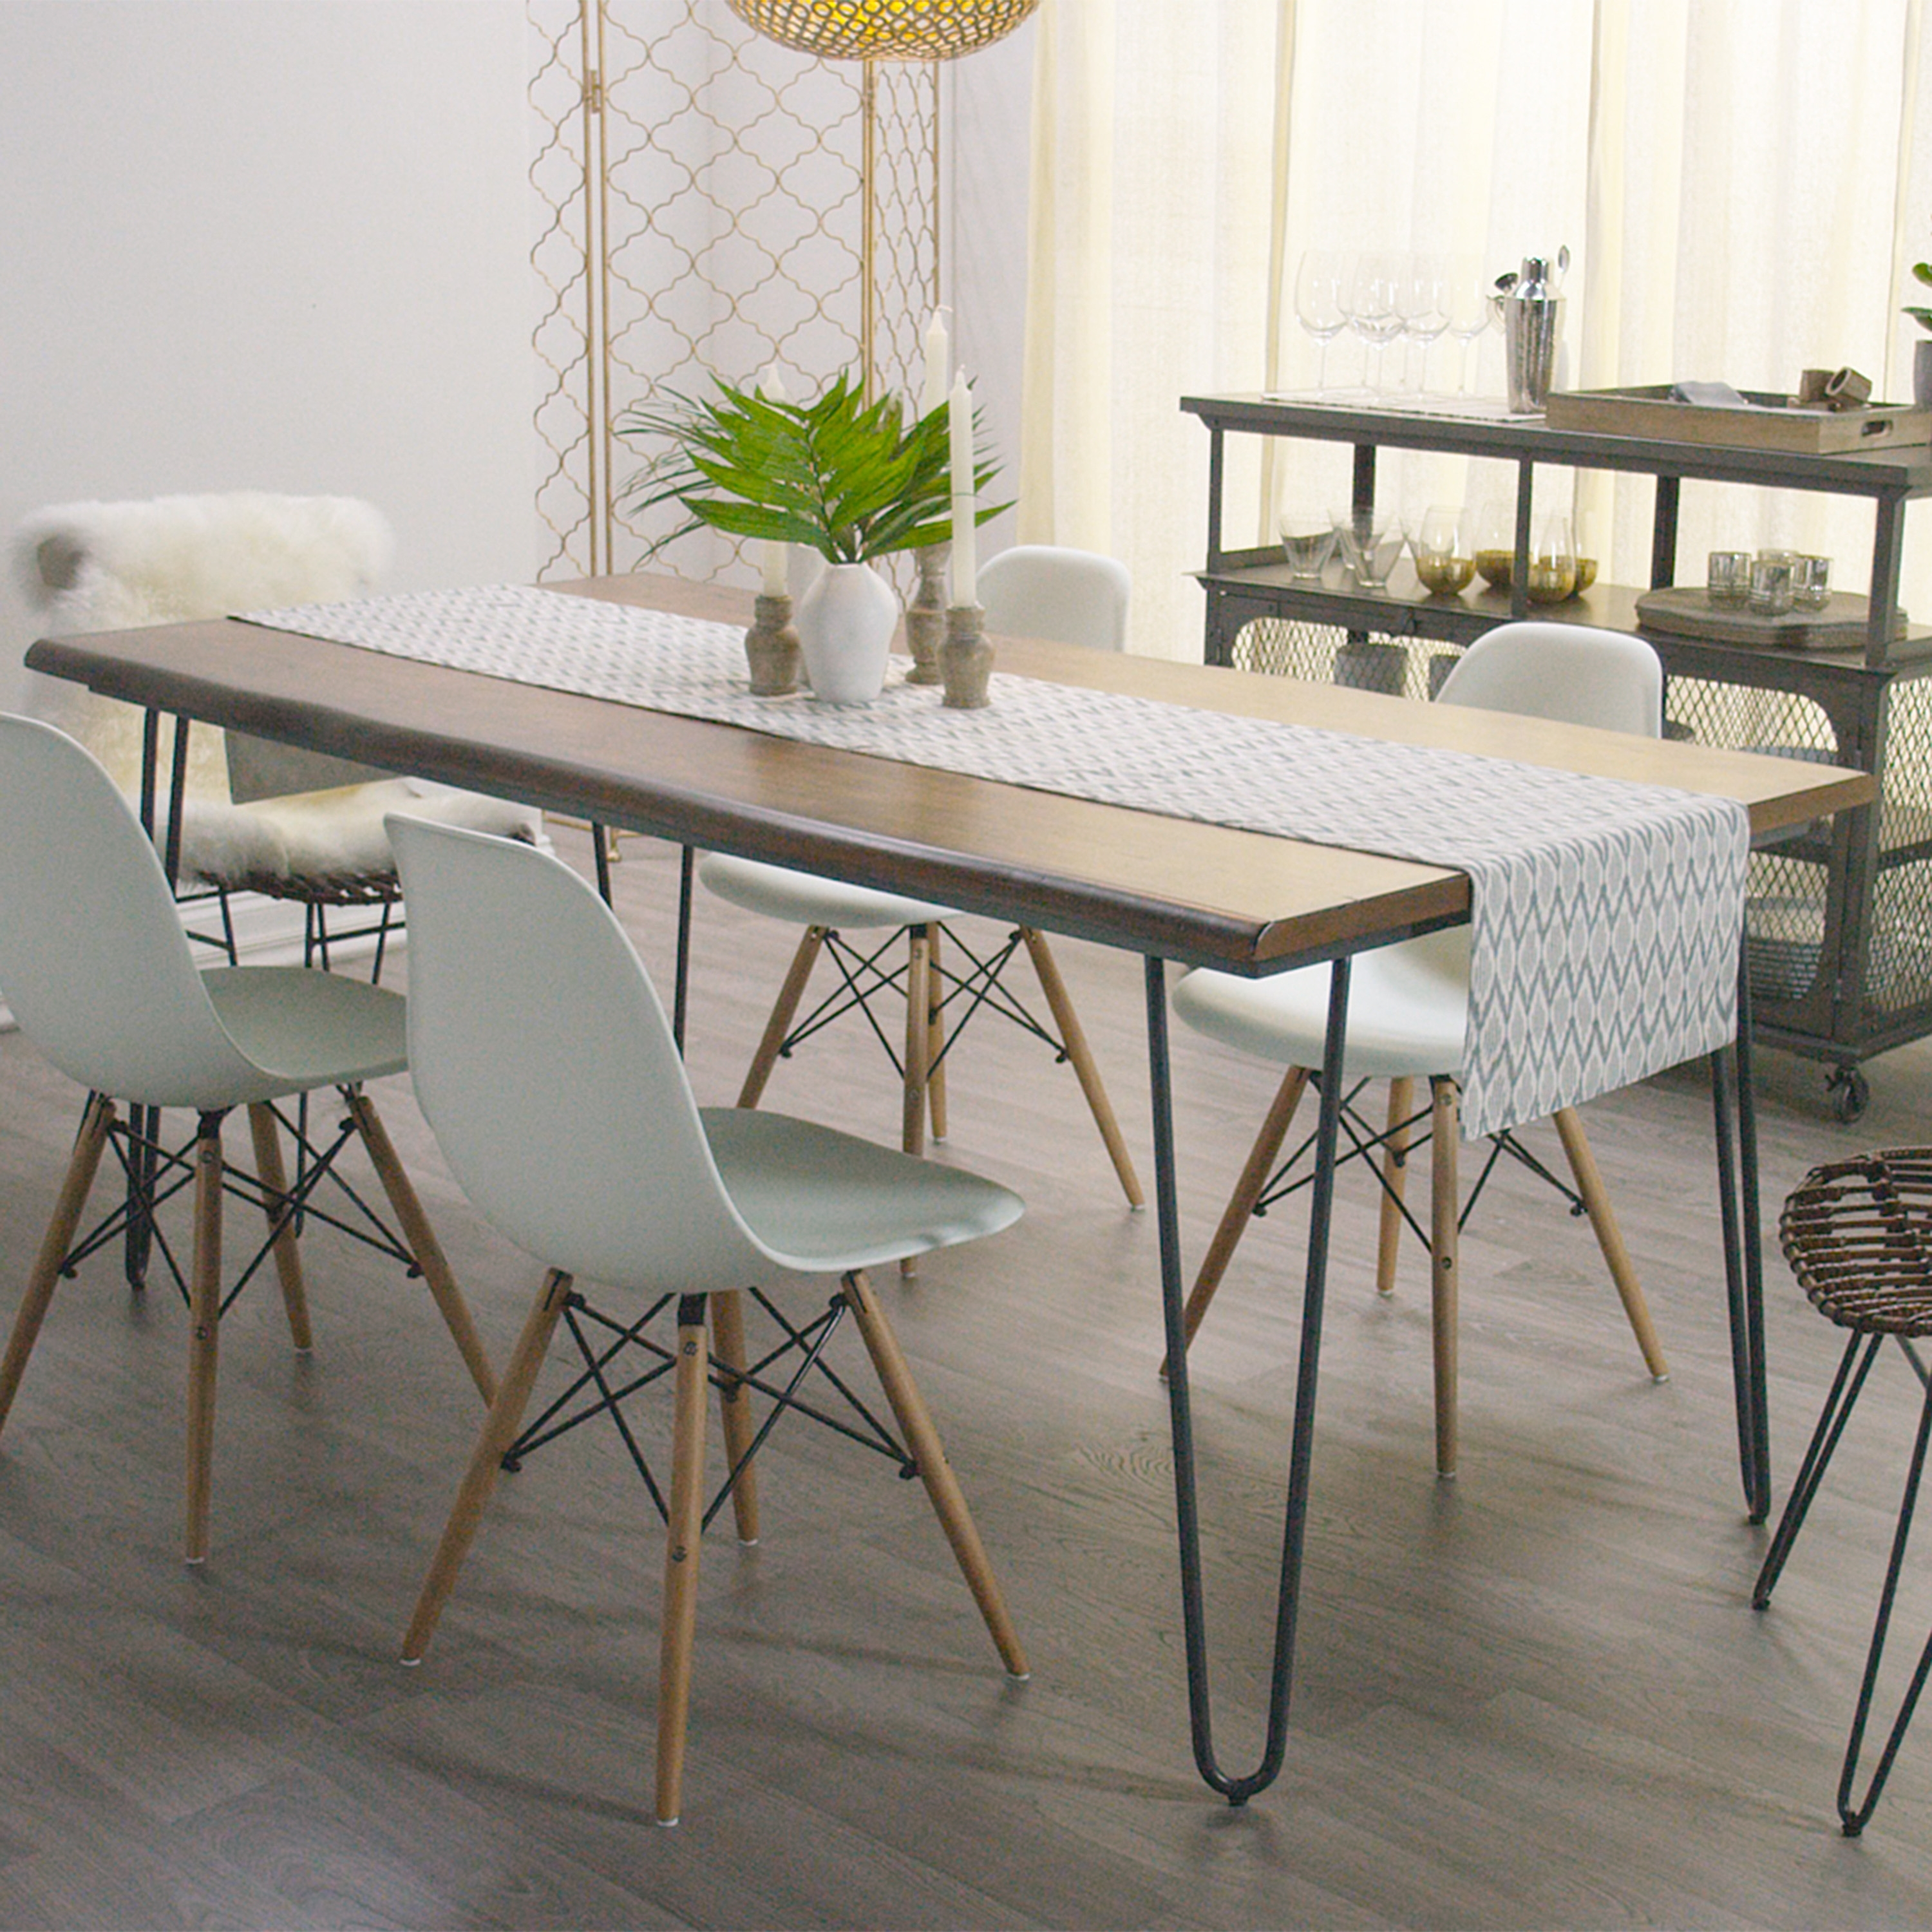 World Market Bedroom Furniture Dining Table Distressed Wood Regarding Most Popular Market Dining Tables (Image 18 of 20)